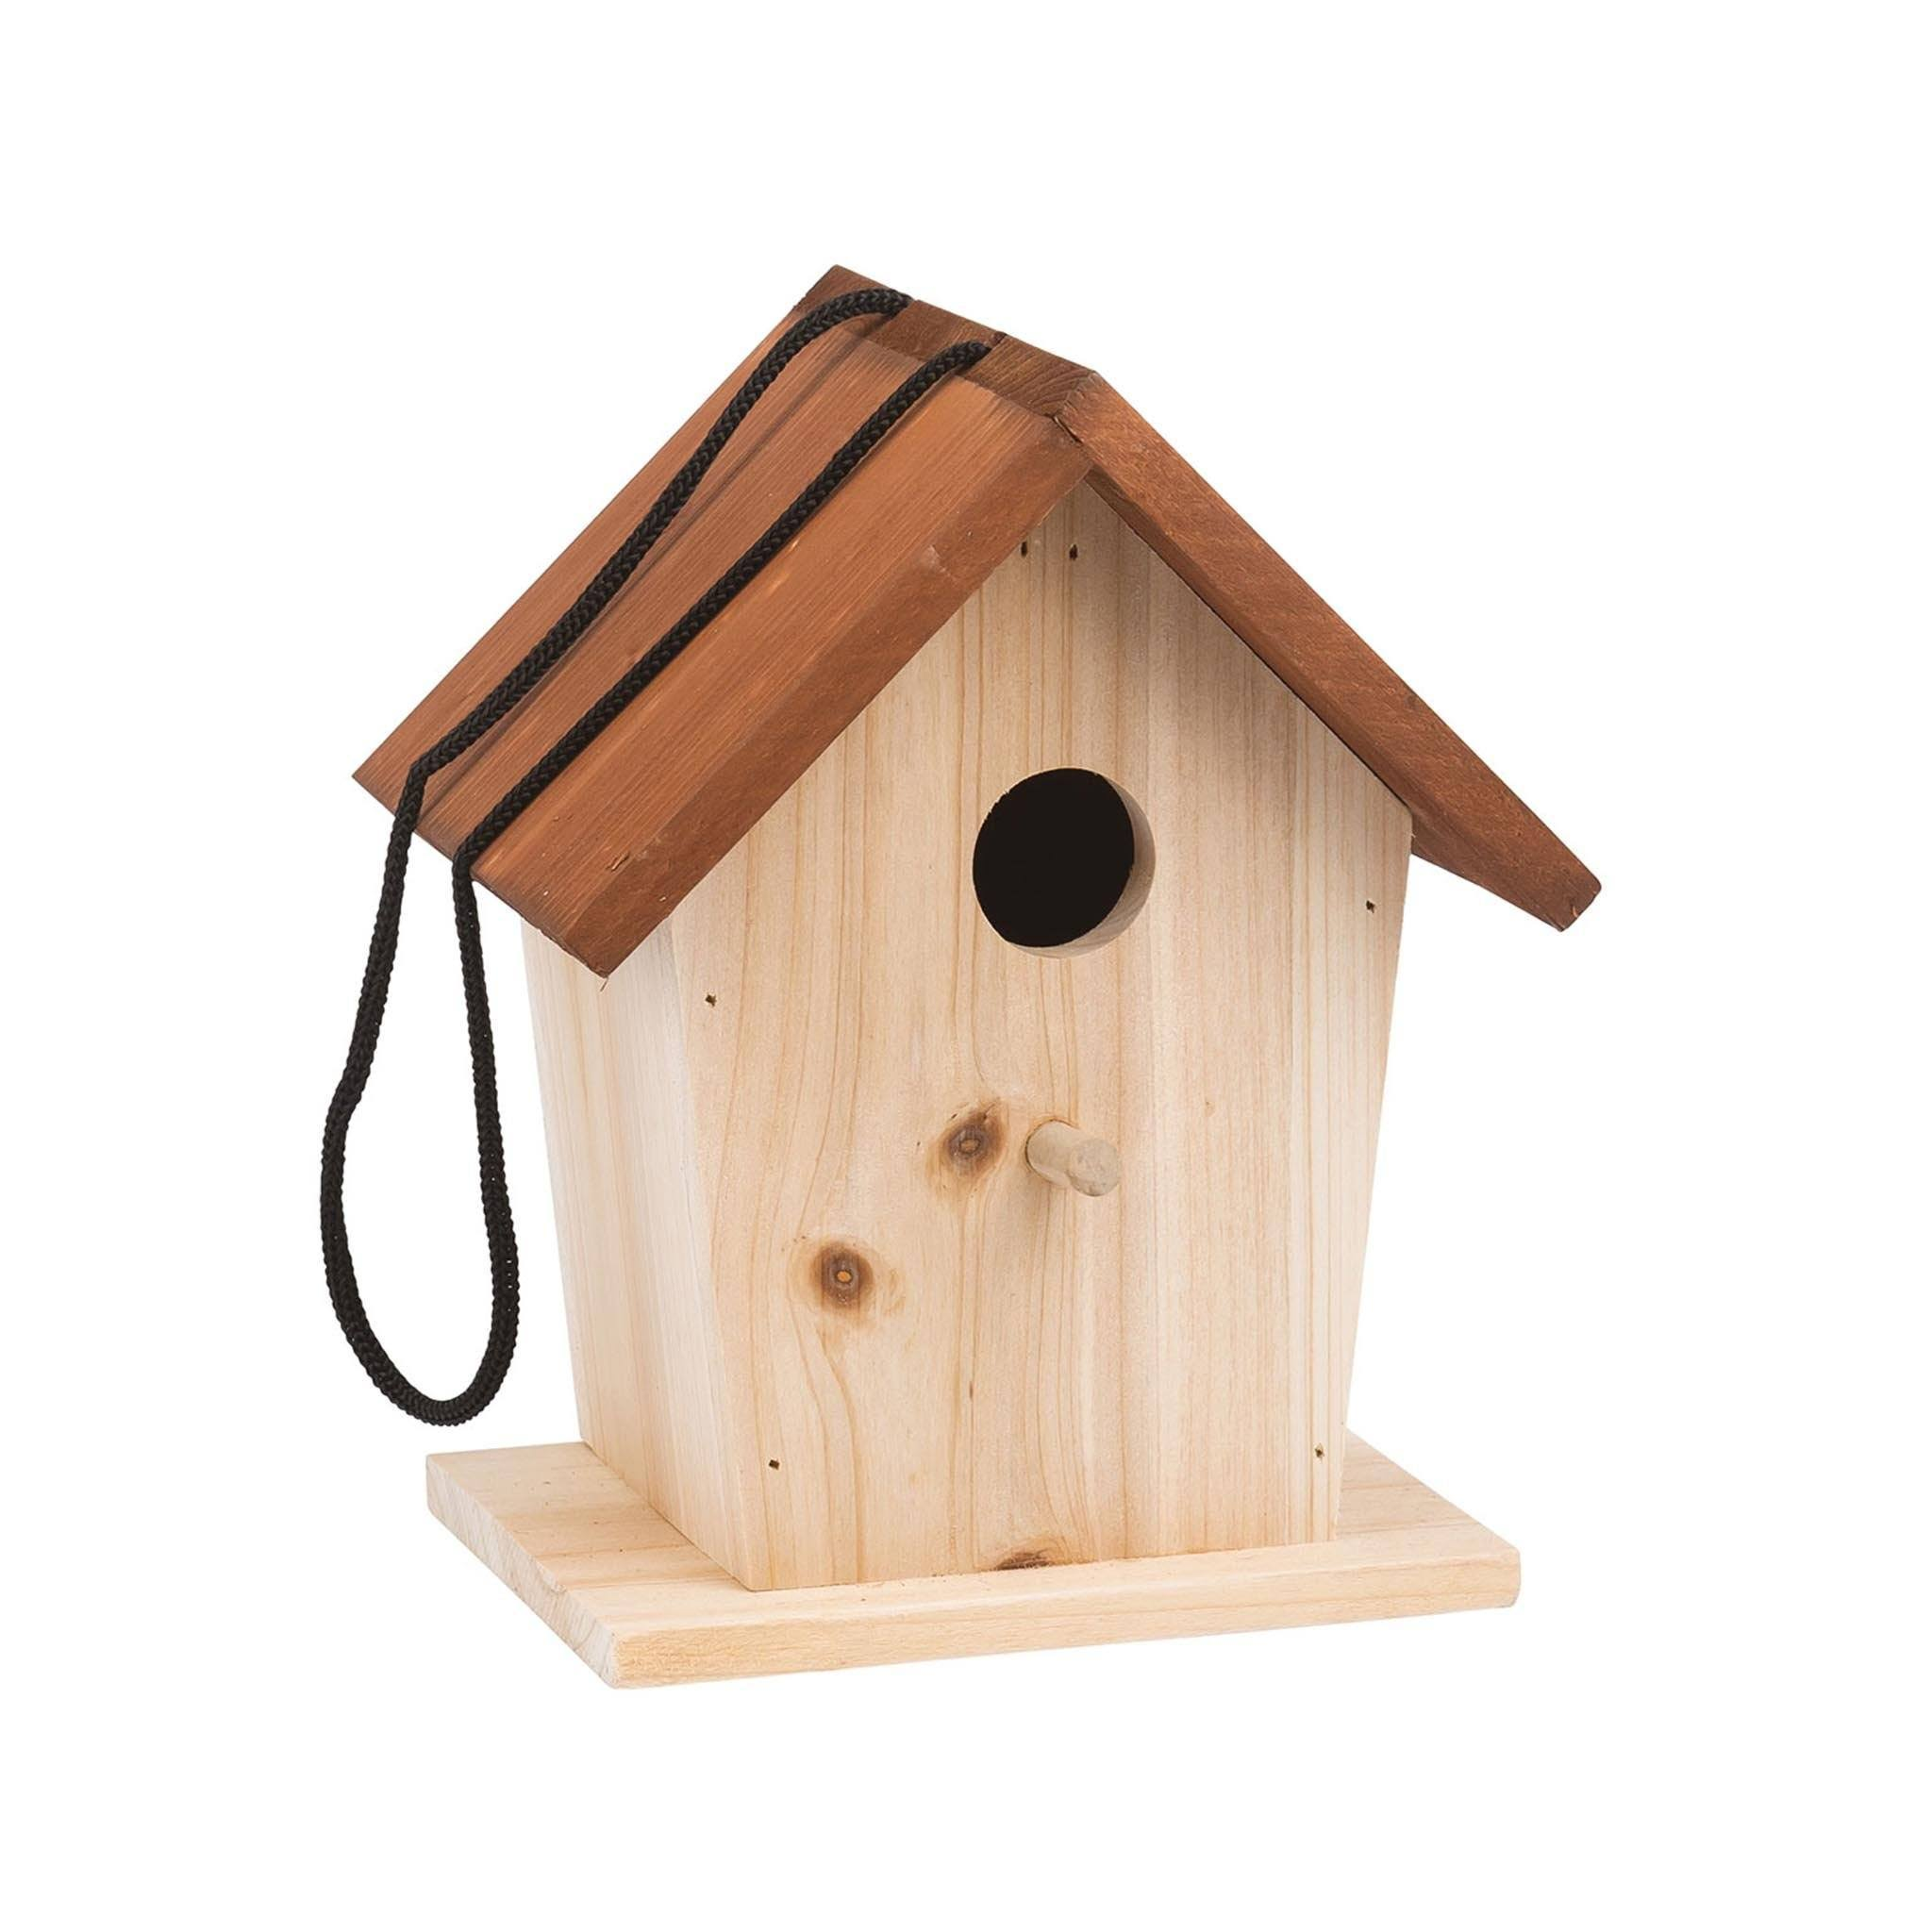 Moulin Roty Wooden Bird House - 18cm x 17cm x 22cm